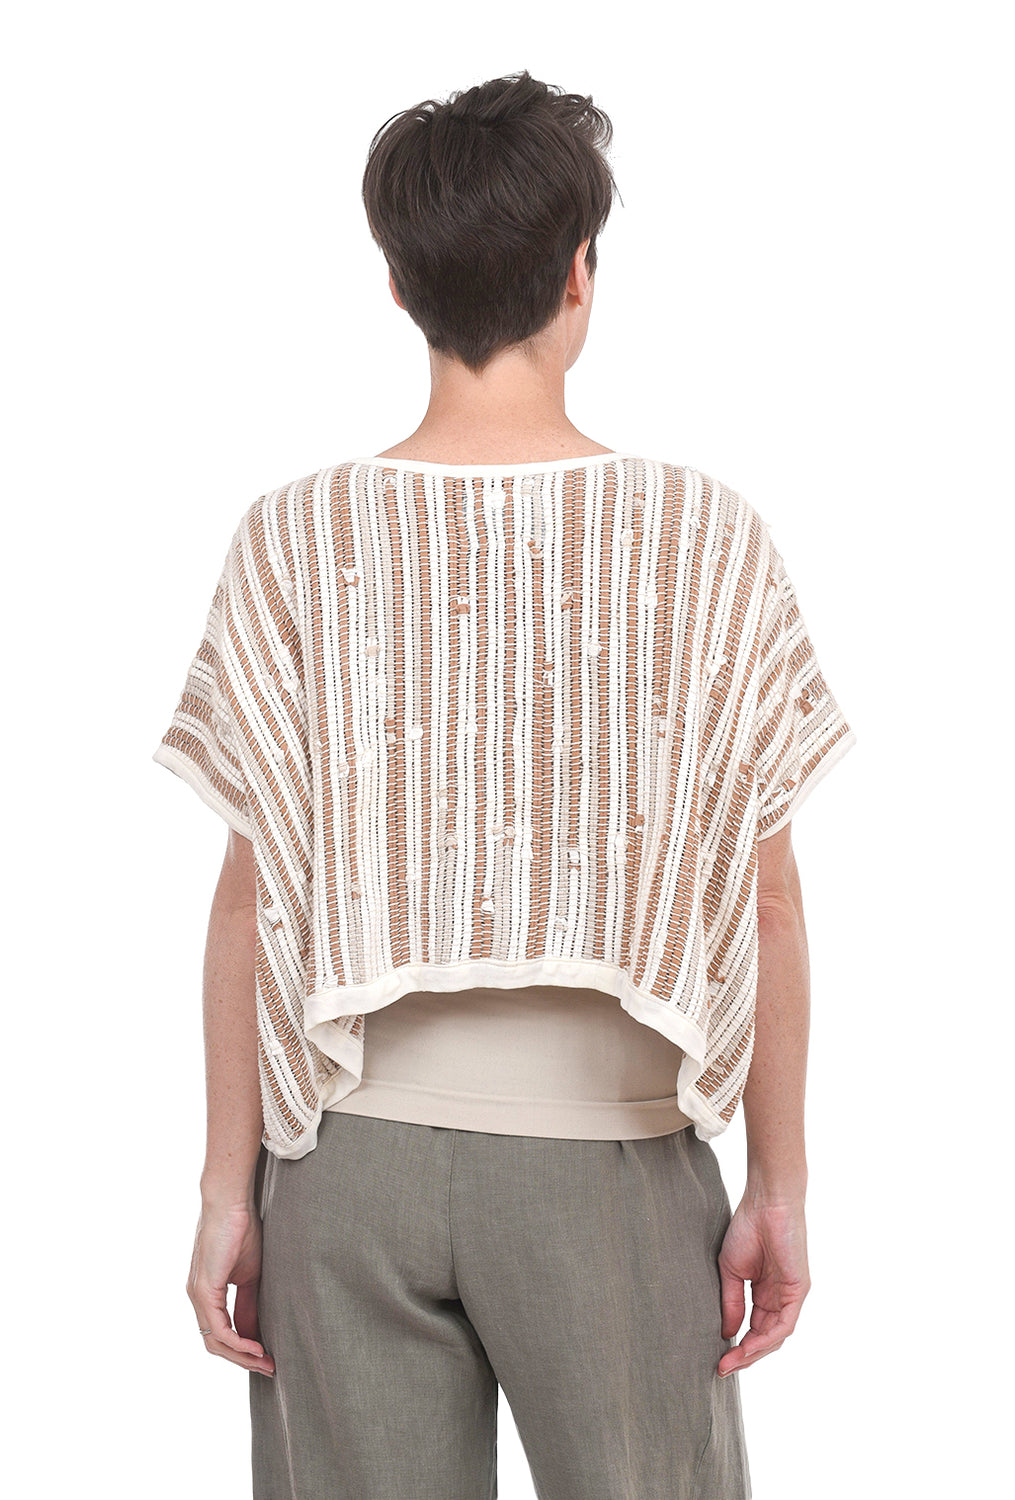 Tonle Srey Crop Top, Natural One Size Natural